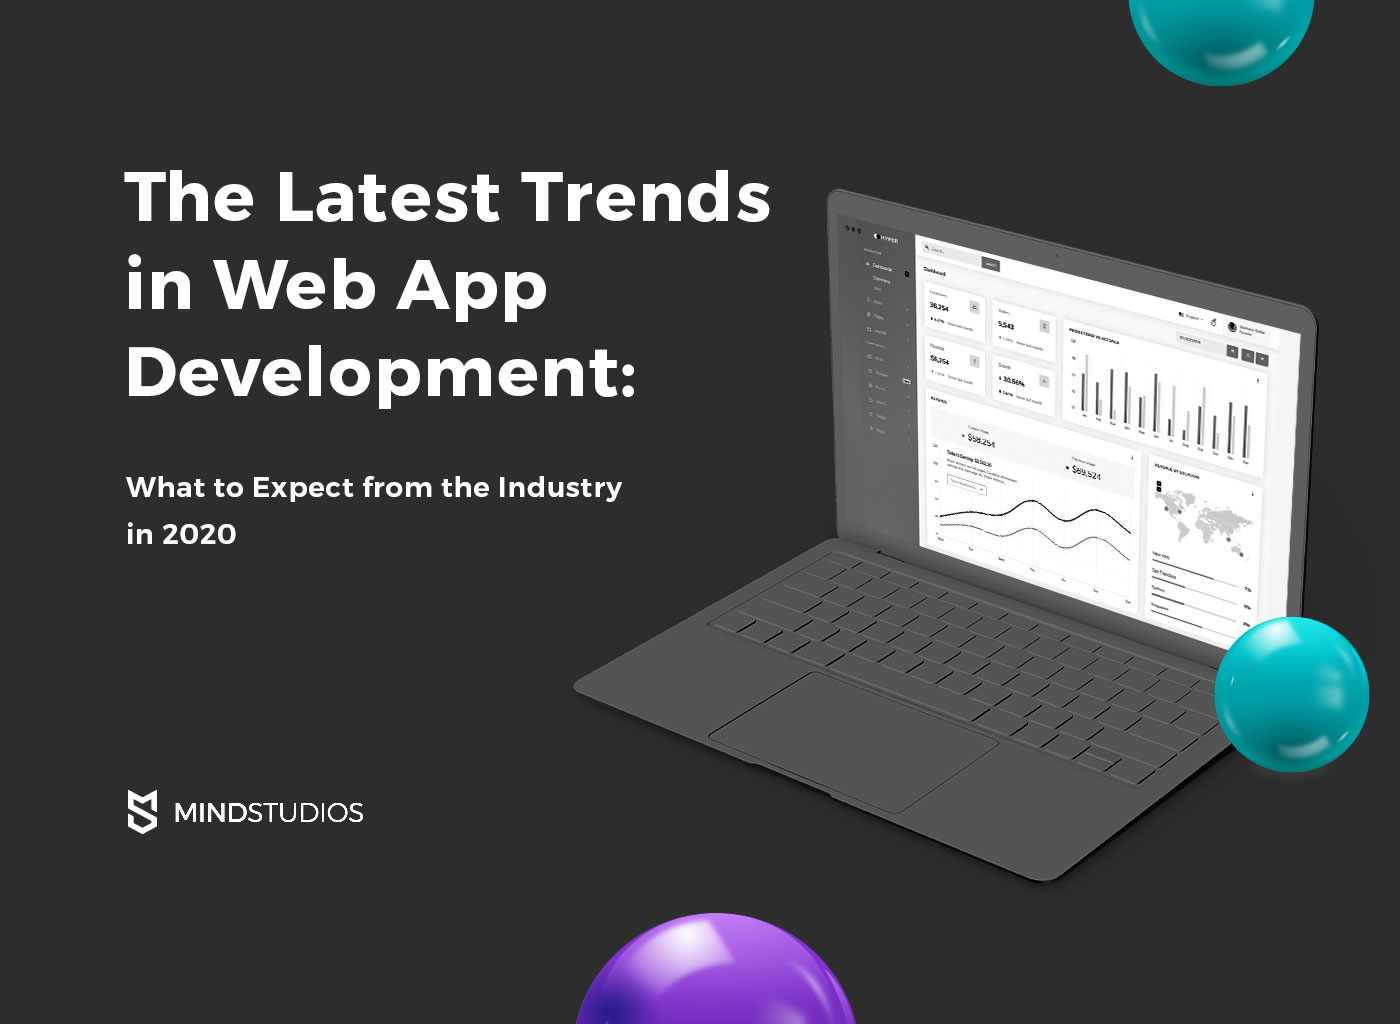 The Latest Trends in Web App Development for 2020: What to Expect from the Industry